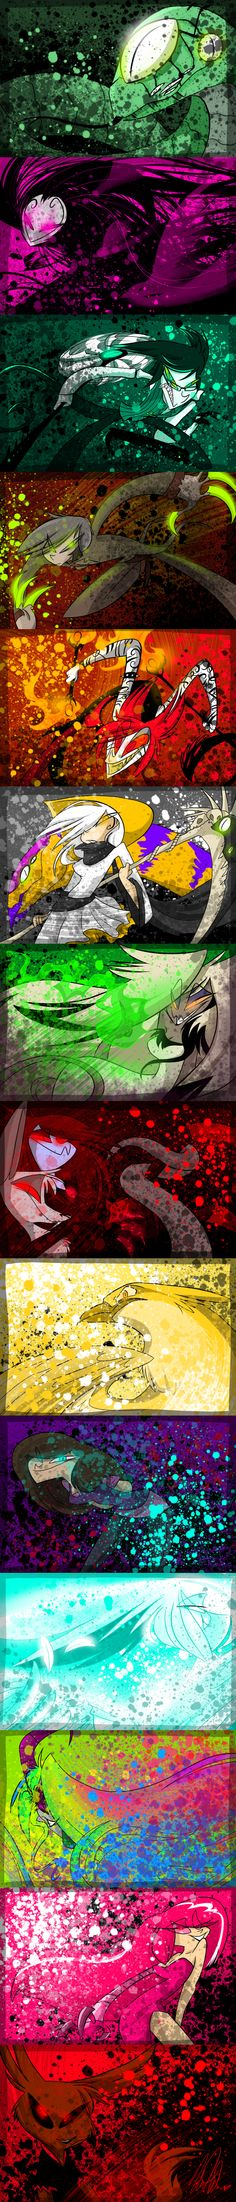 Remember The Name by VivzMind.deviantart.com on @DeviantArt